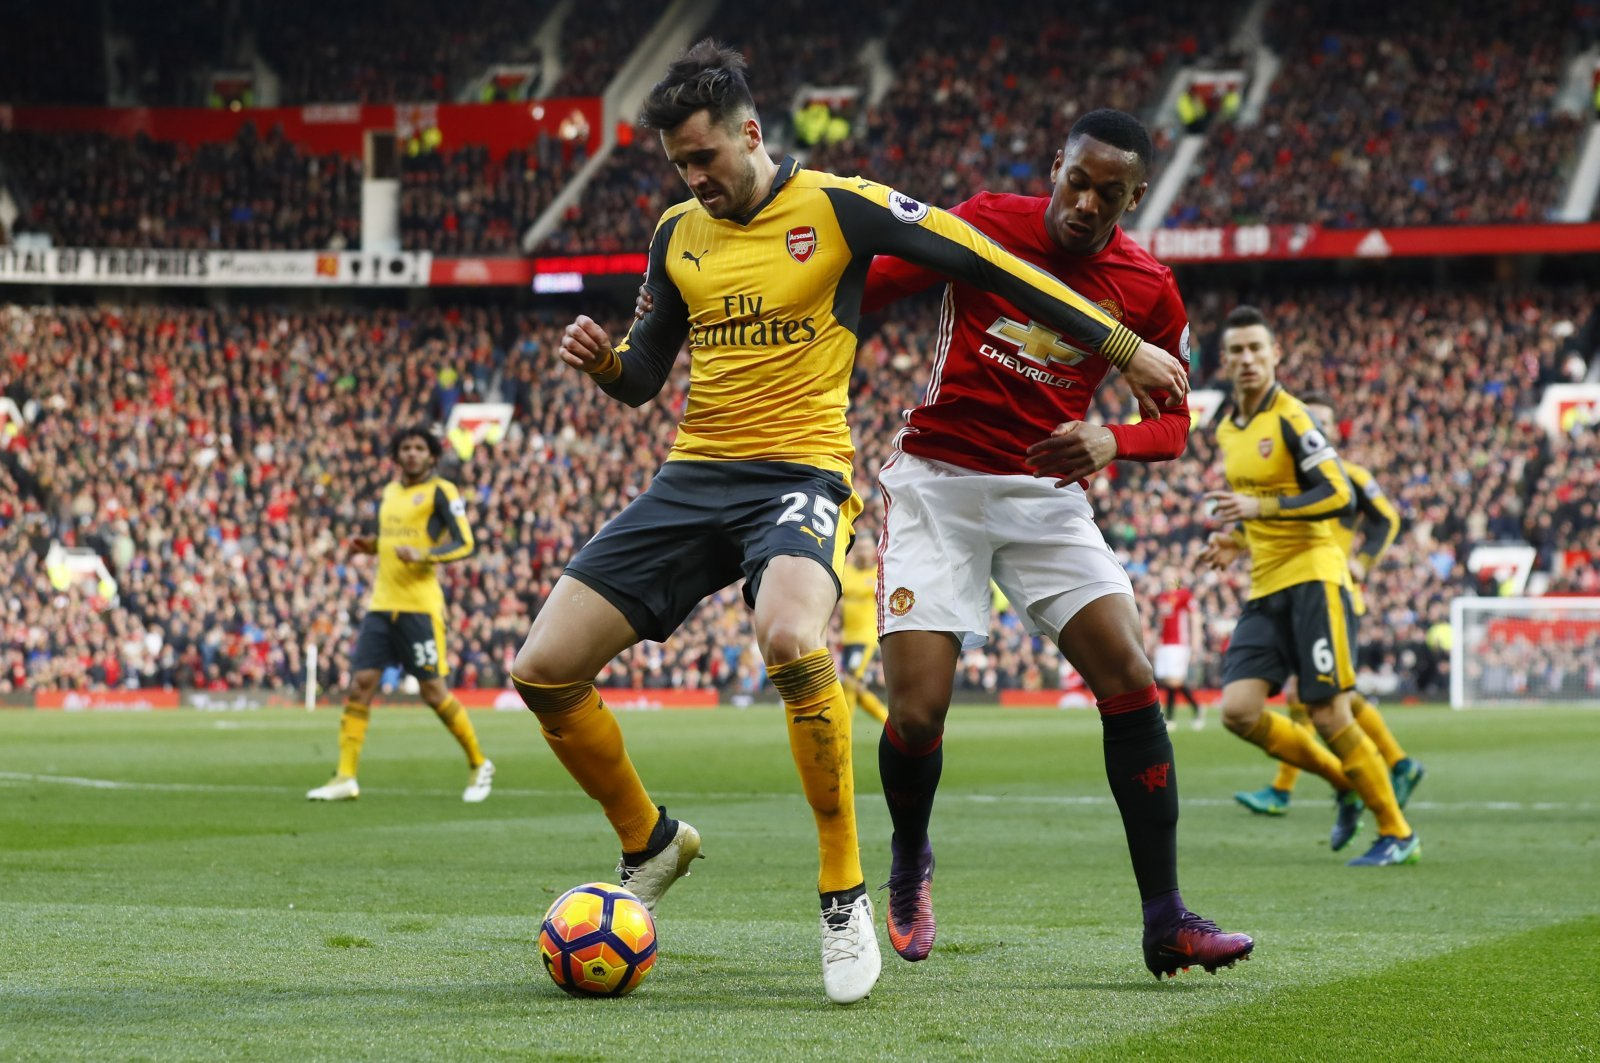 Arsenal fans on Twitter praise Jenkinson after Cardiff City cameo